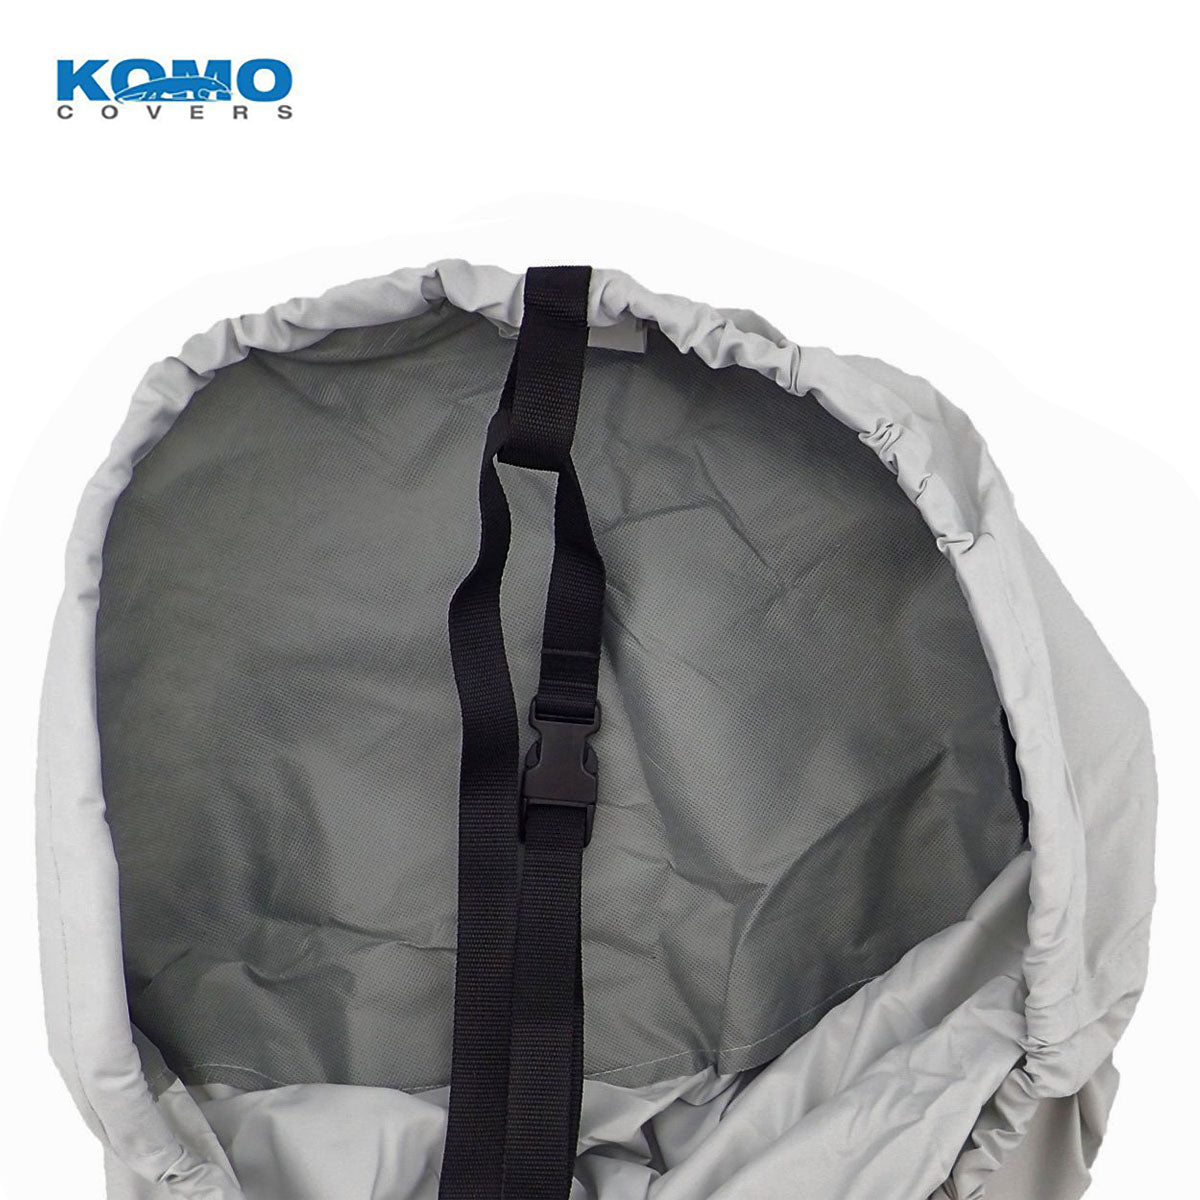 Trailerable Boat Cover Reinforced Bow and Strap Loop